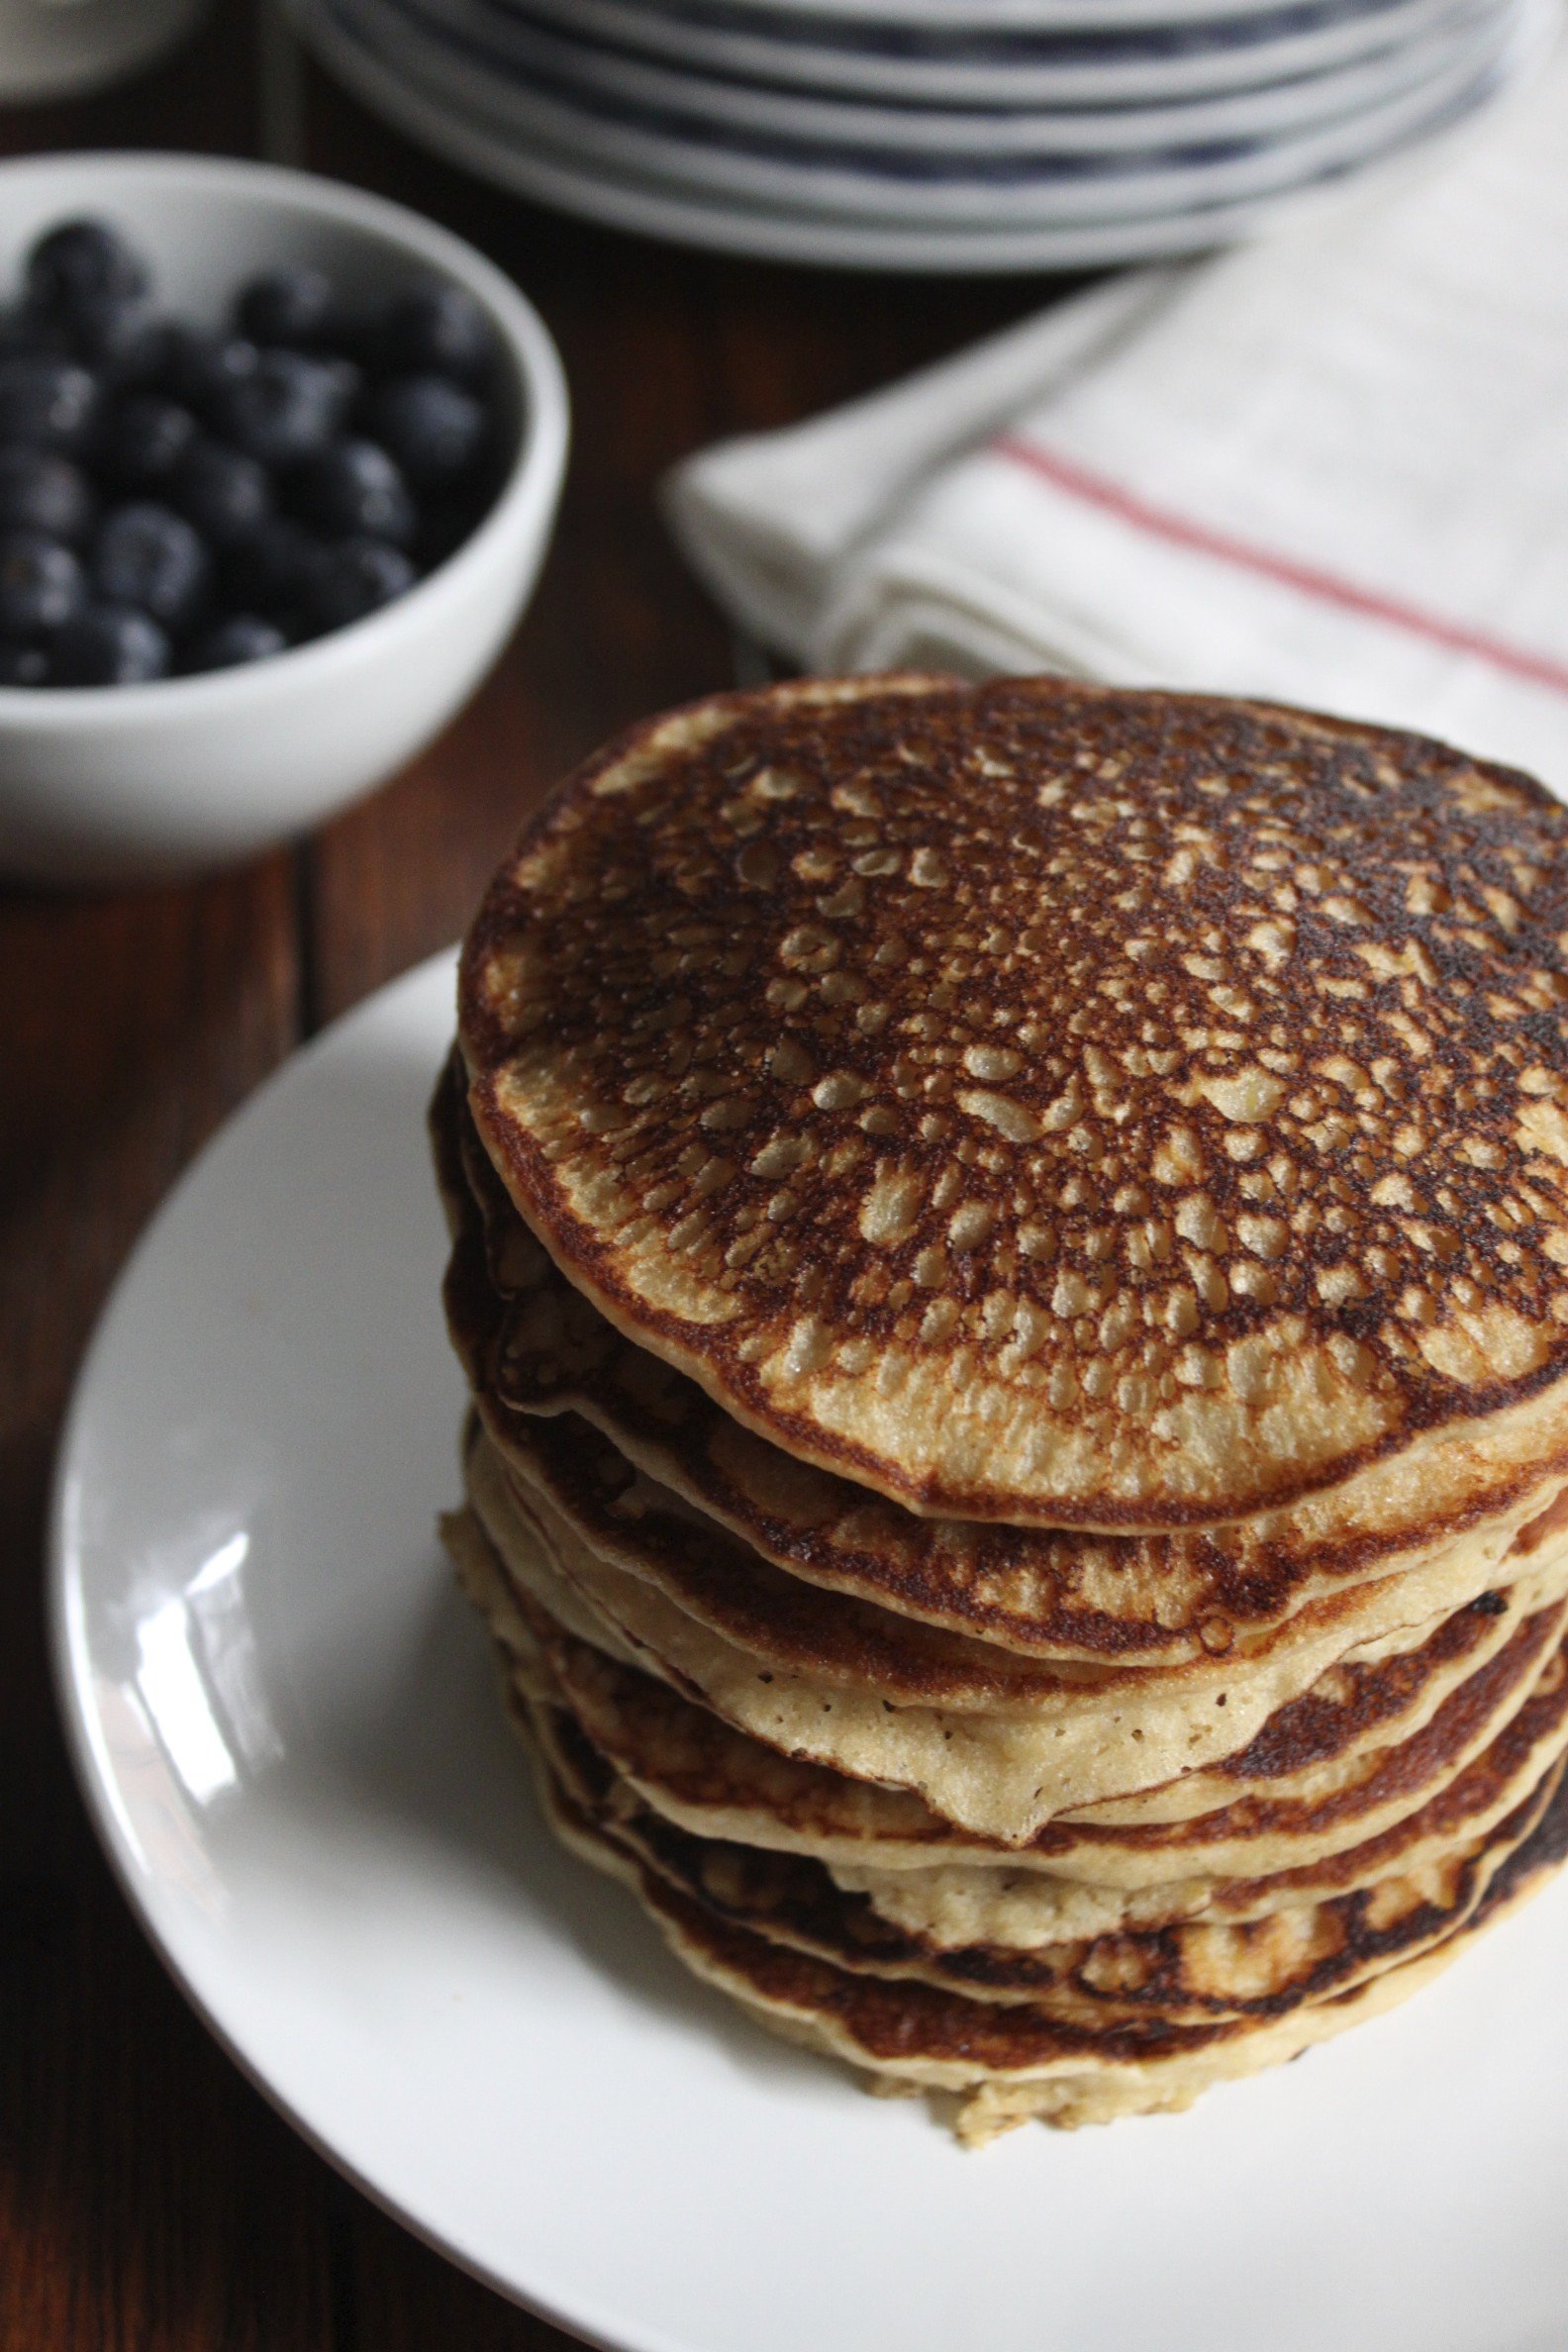 Cooking channel hungry sofia i was training for the nyc marathon and developed a recipe for amaranth pancakes for the cooking channels devour forumfinder Images